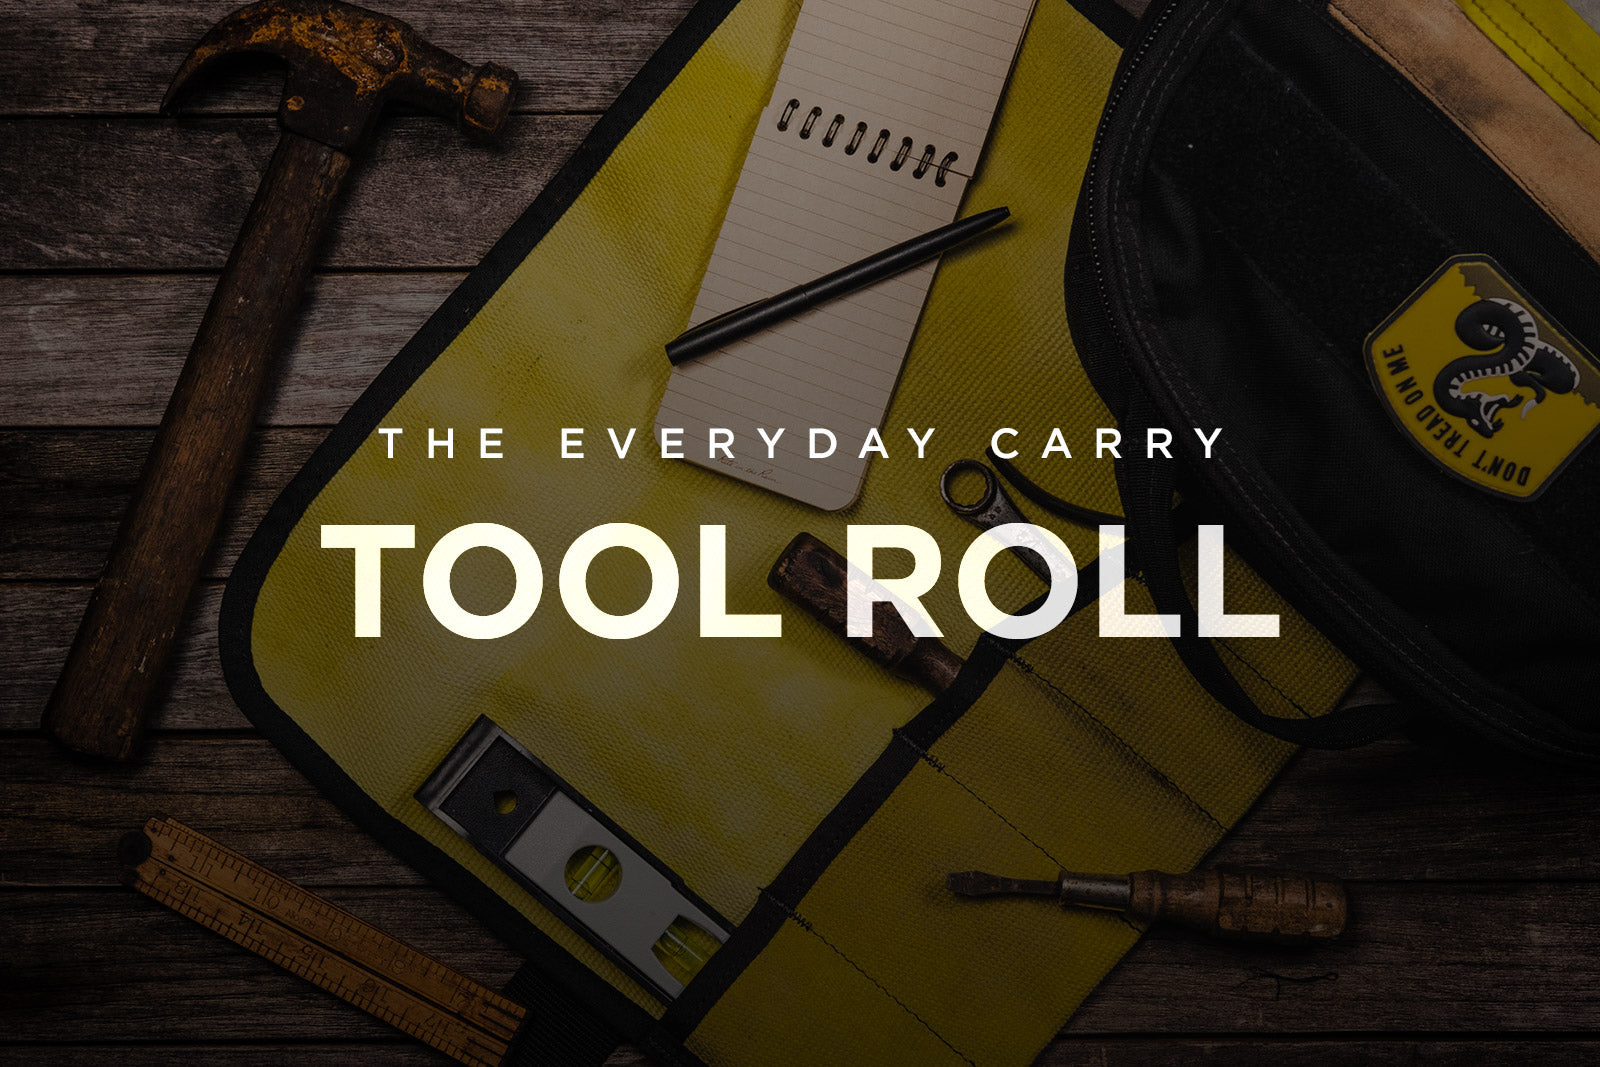 Everyday Carry Tool Roll